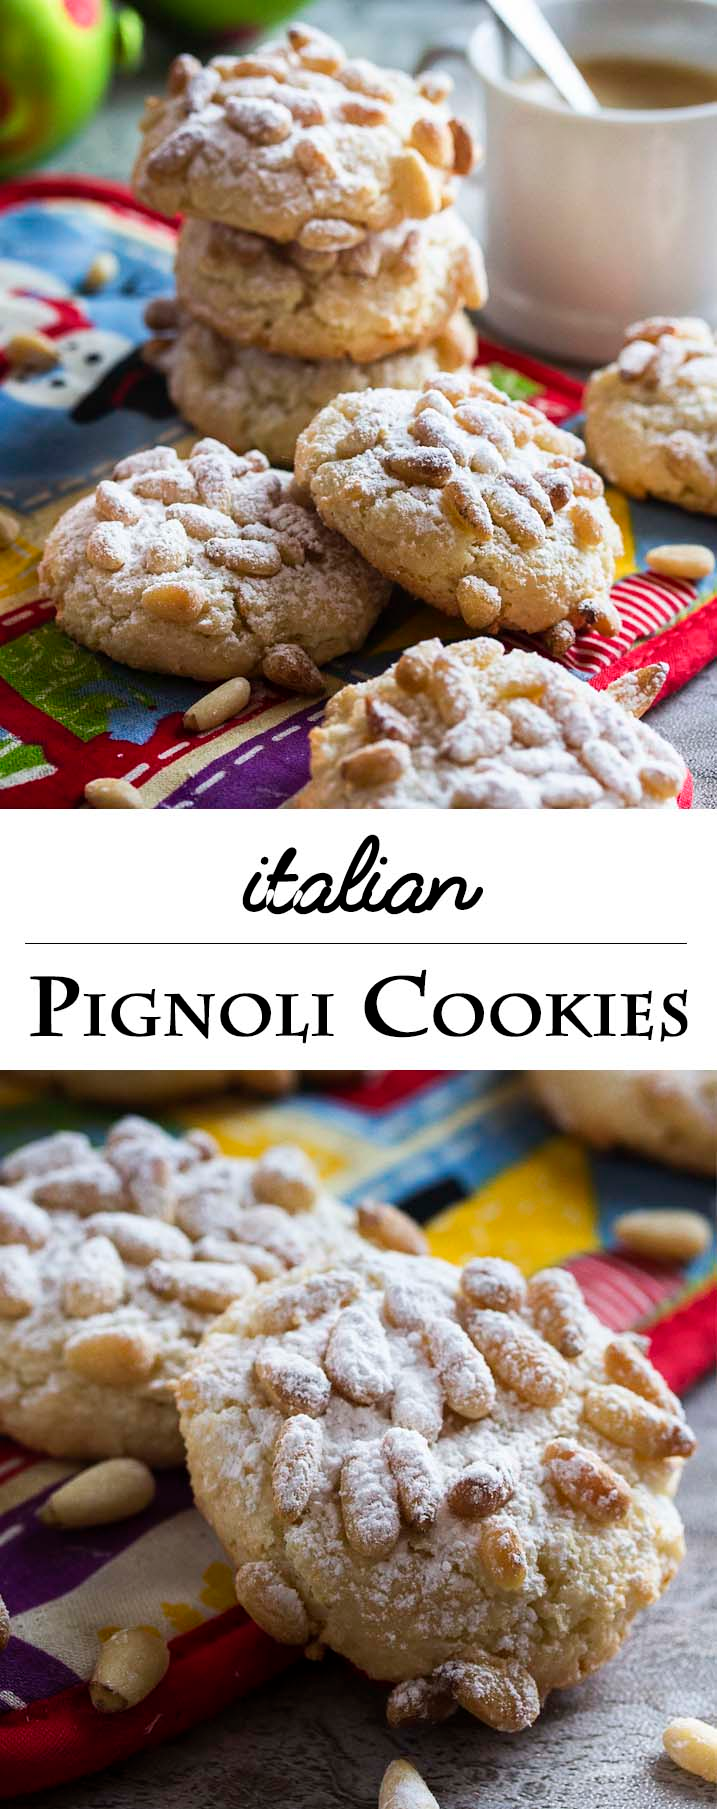 Lidia's Italian Pignoli Cookies - Just a Little Bit of Bacon